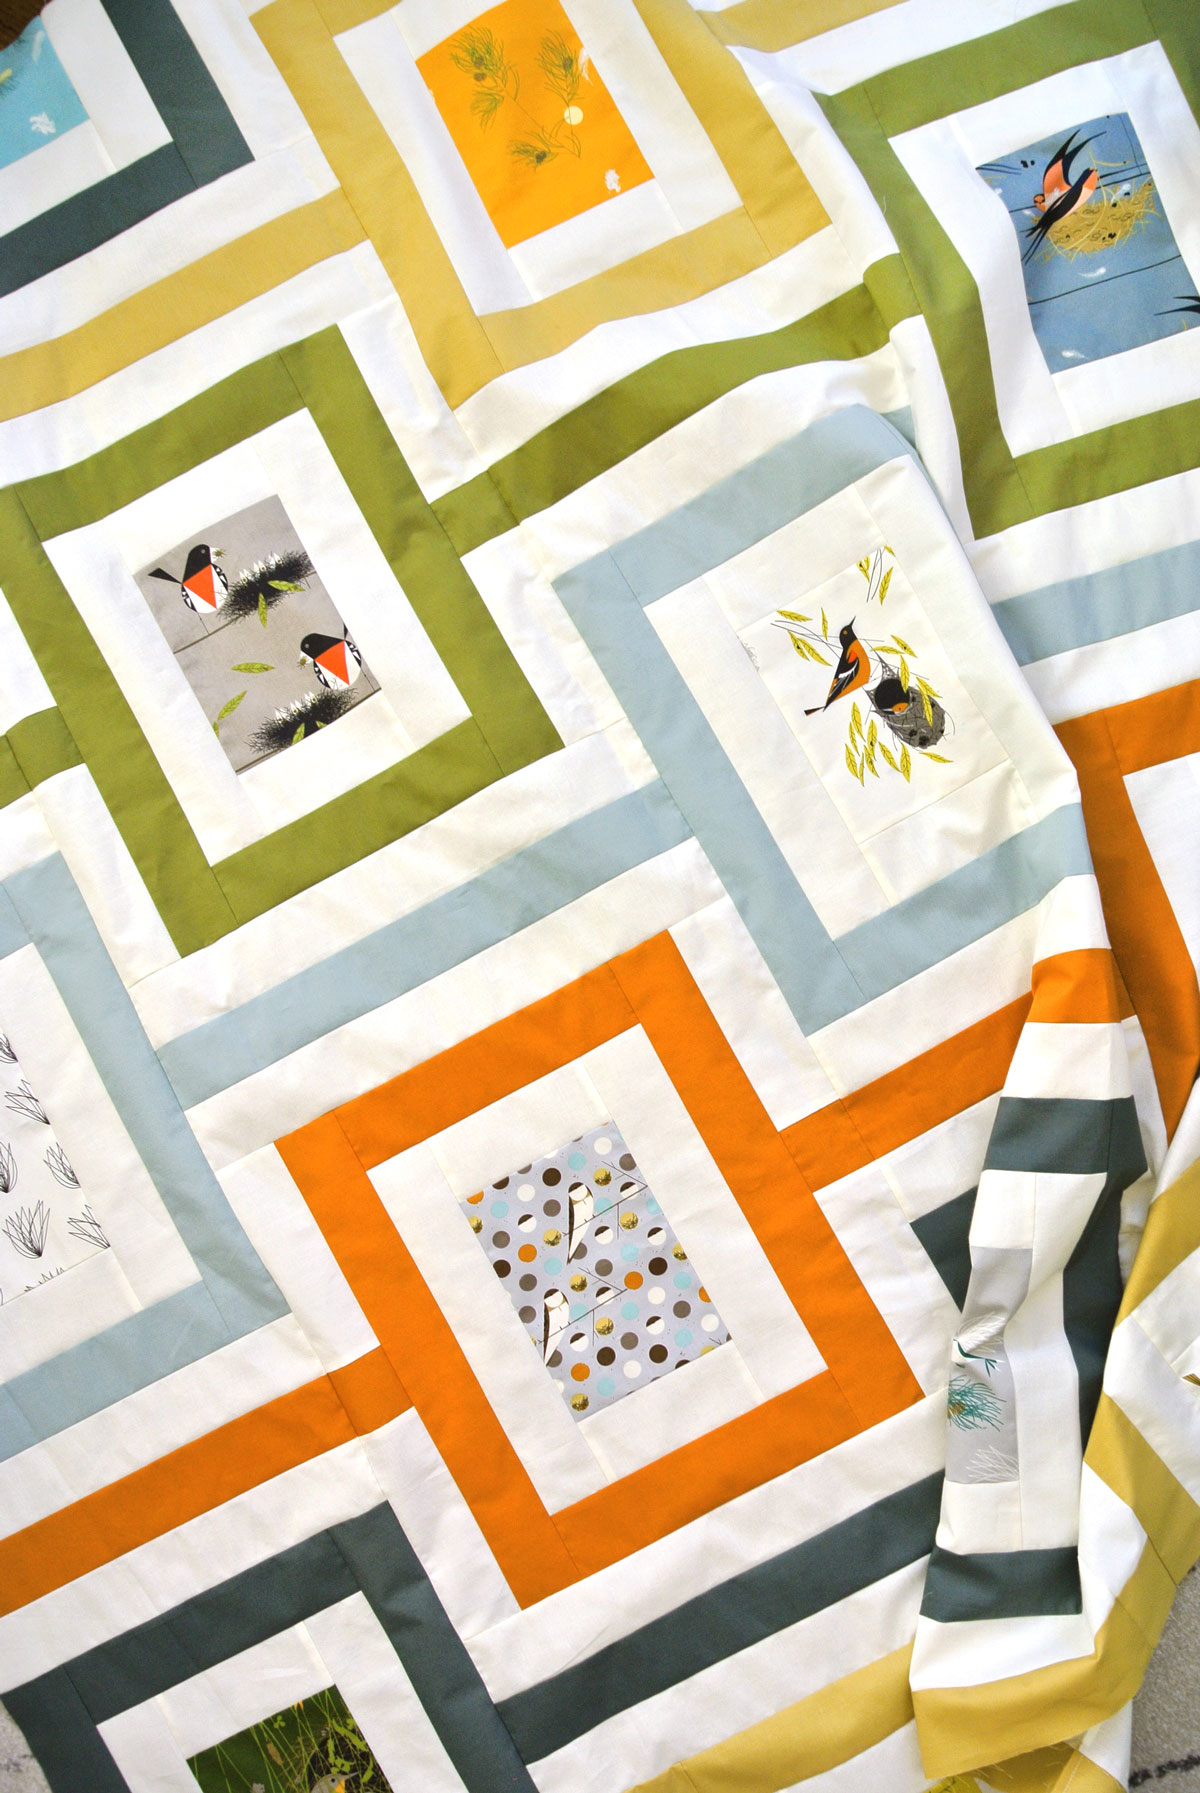 Free Quilt Pattern Download Cincinnati Quilt with Charley Harper Birds Fabric Design | Suzy Quilts https://suzyquilts.com/free-cincinnati-quilt-pattern/